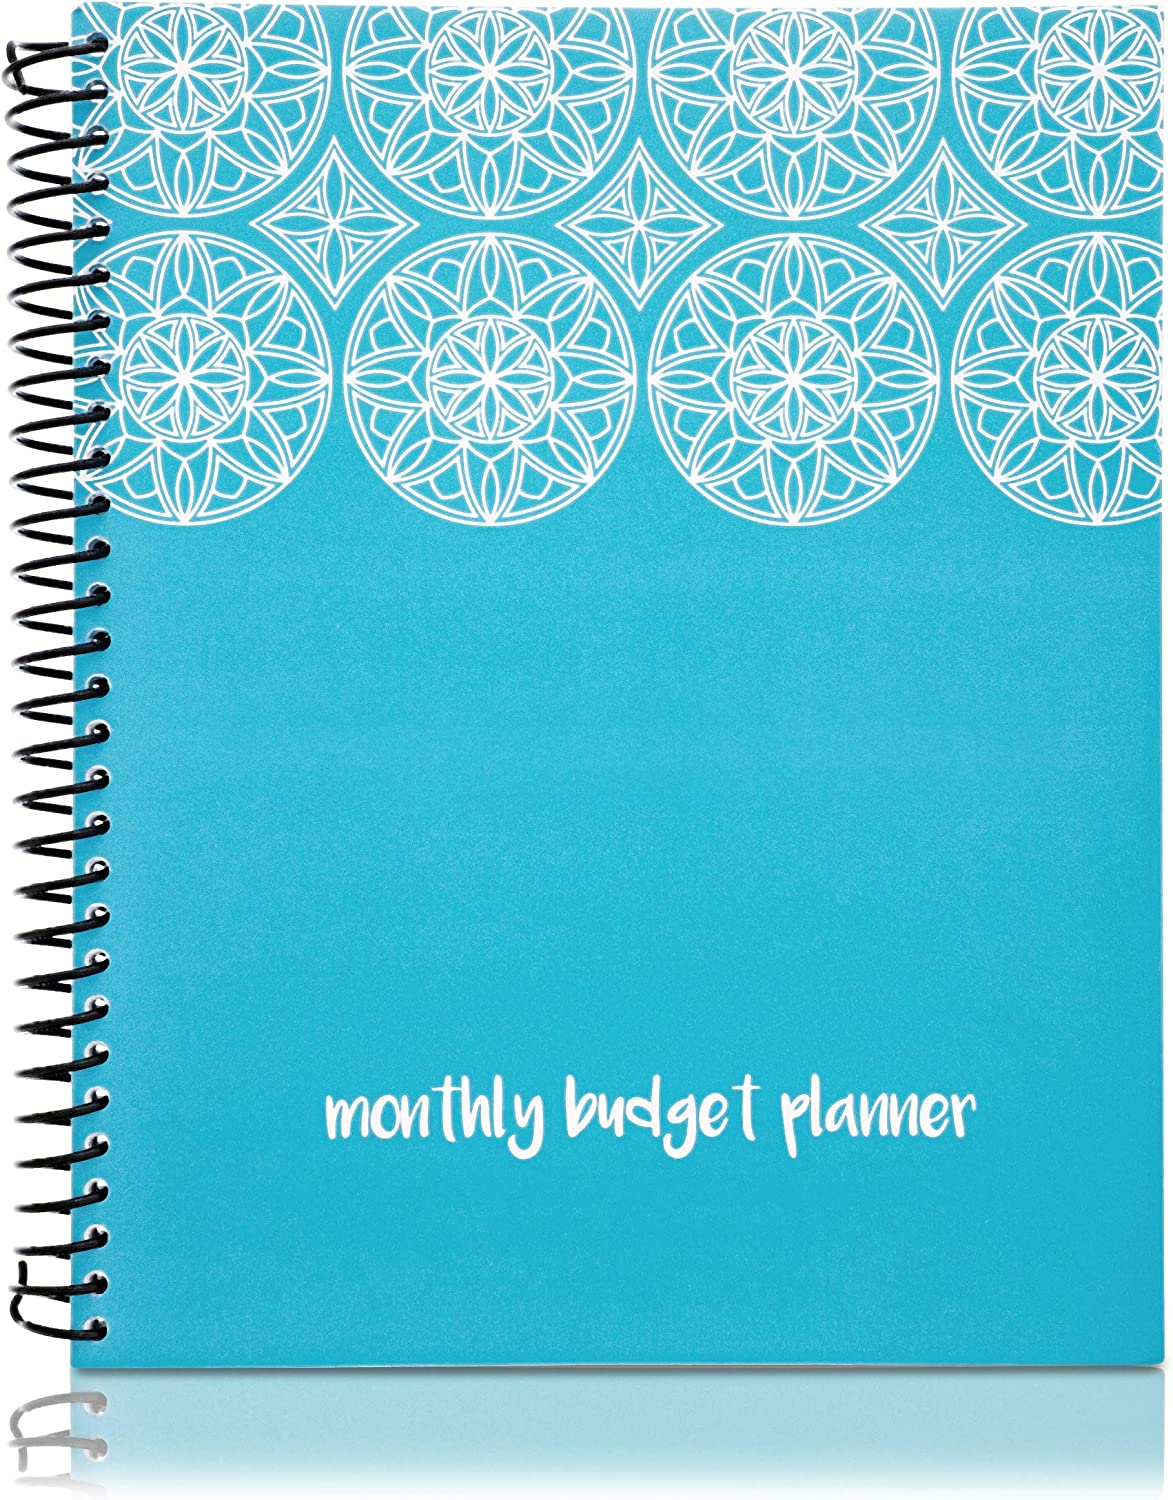 "Monthly Budget Book, Financial Planner Organizer Expense Tracker with 24 Pockets for Receipts & Bills, Blue 8"" x 10"" Perfect for Household, Personal Money Control, by Paper Junkie"